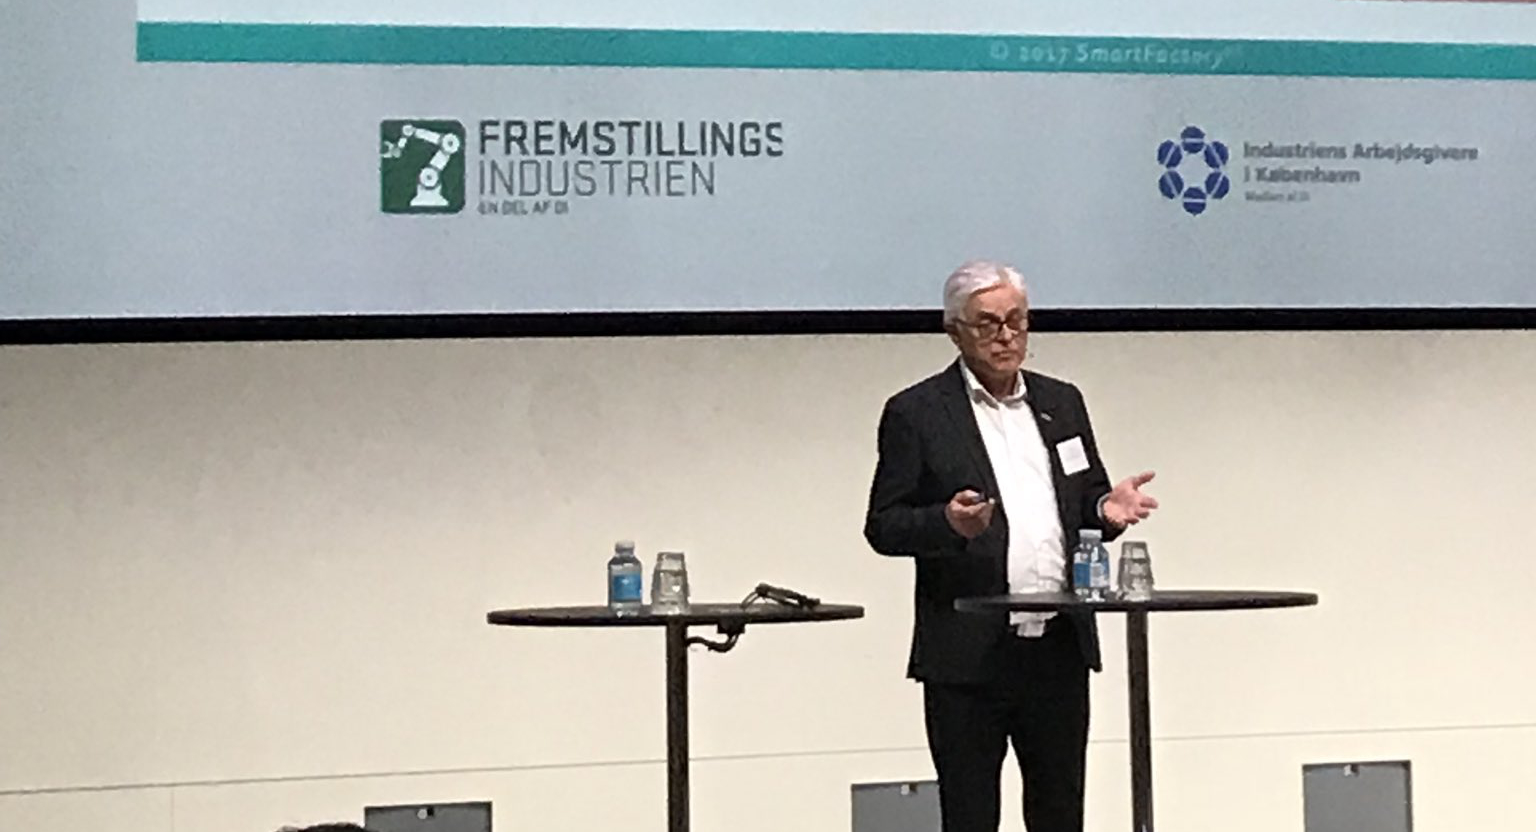 Prof. Zühlke speaks at MADE in Copenhagen, Denmark